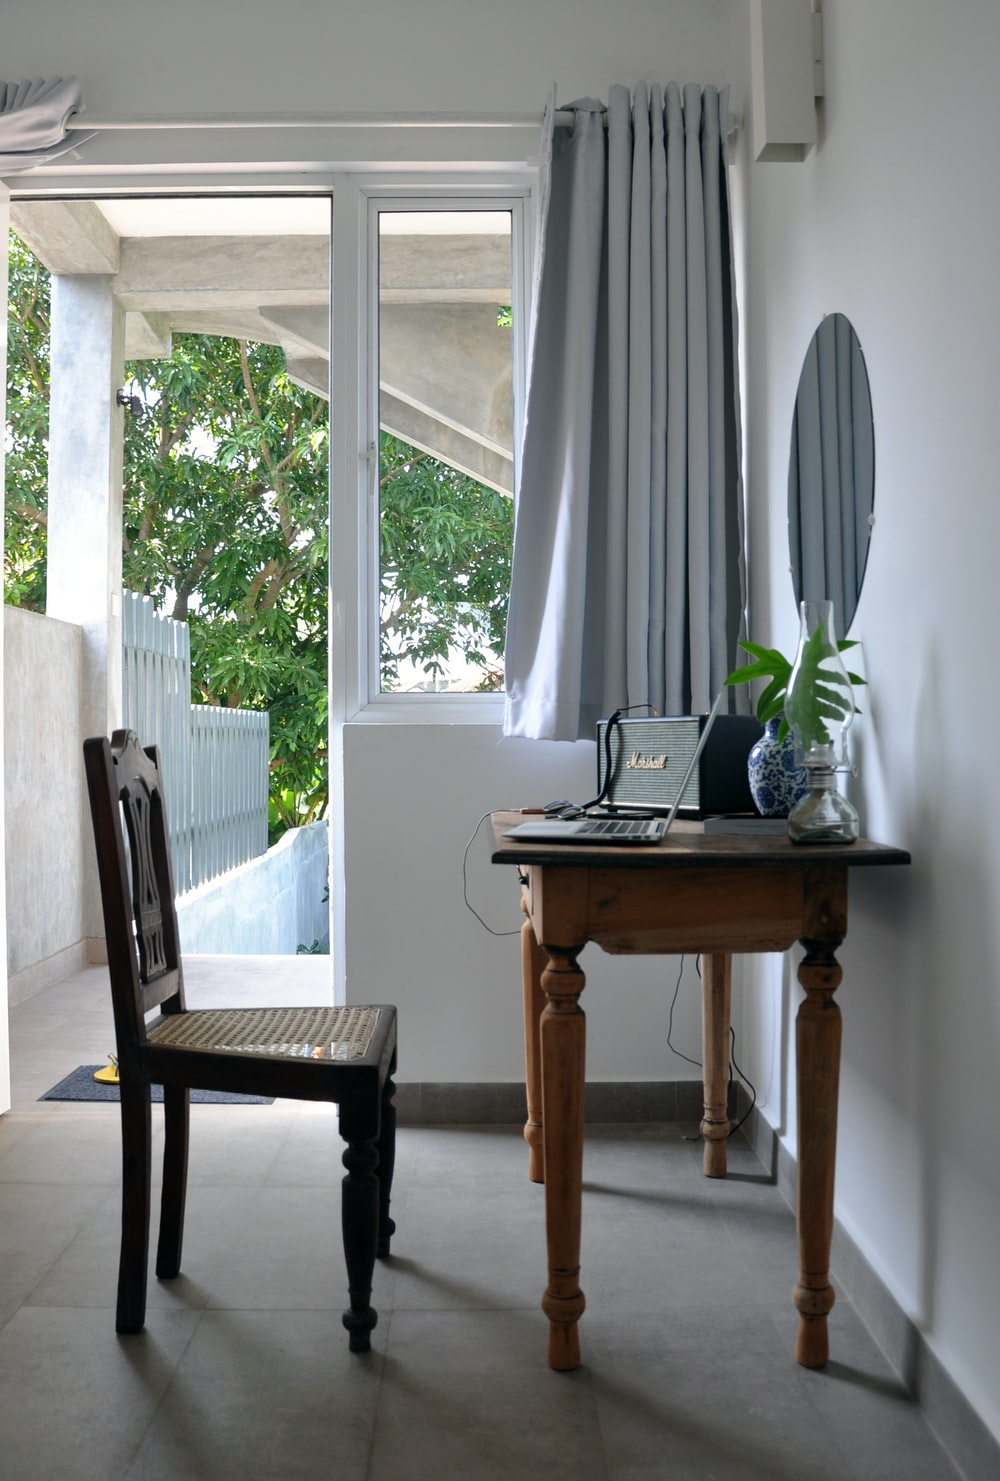 black chair in front of console table